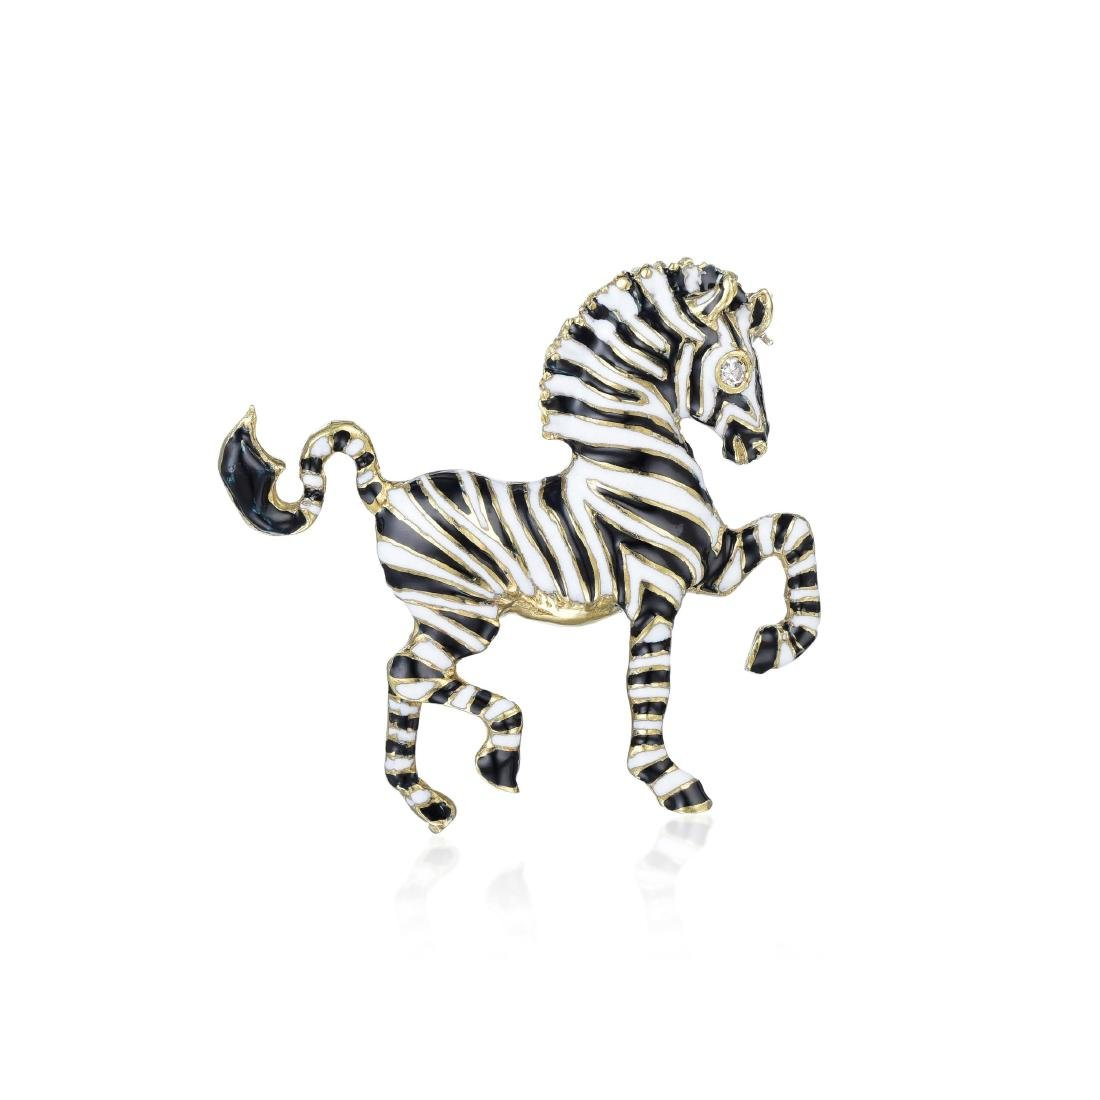 Martine Gold and Enamel Zebra Brooch